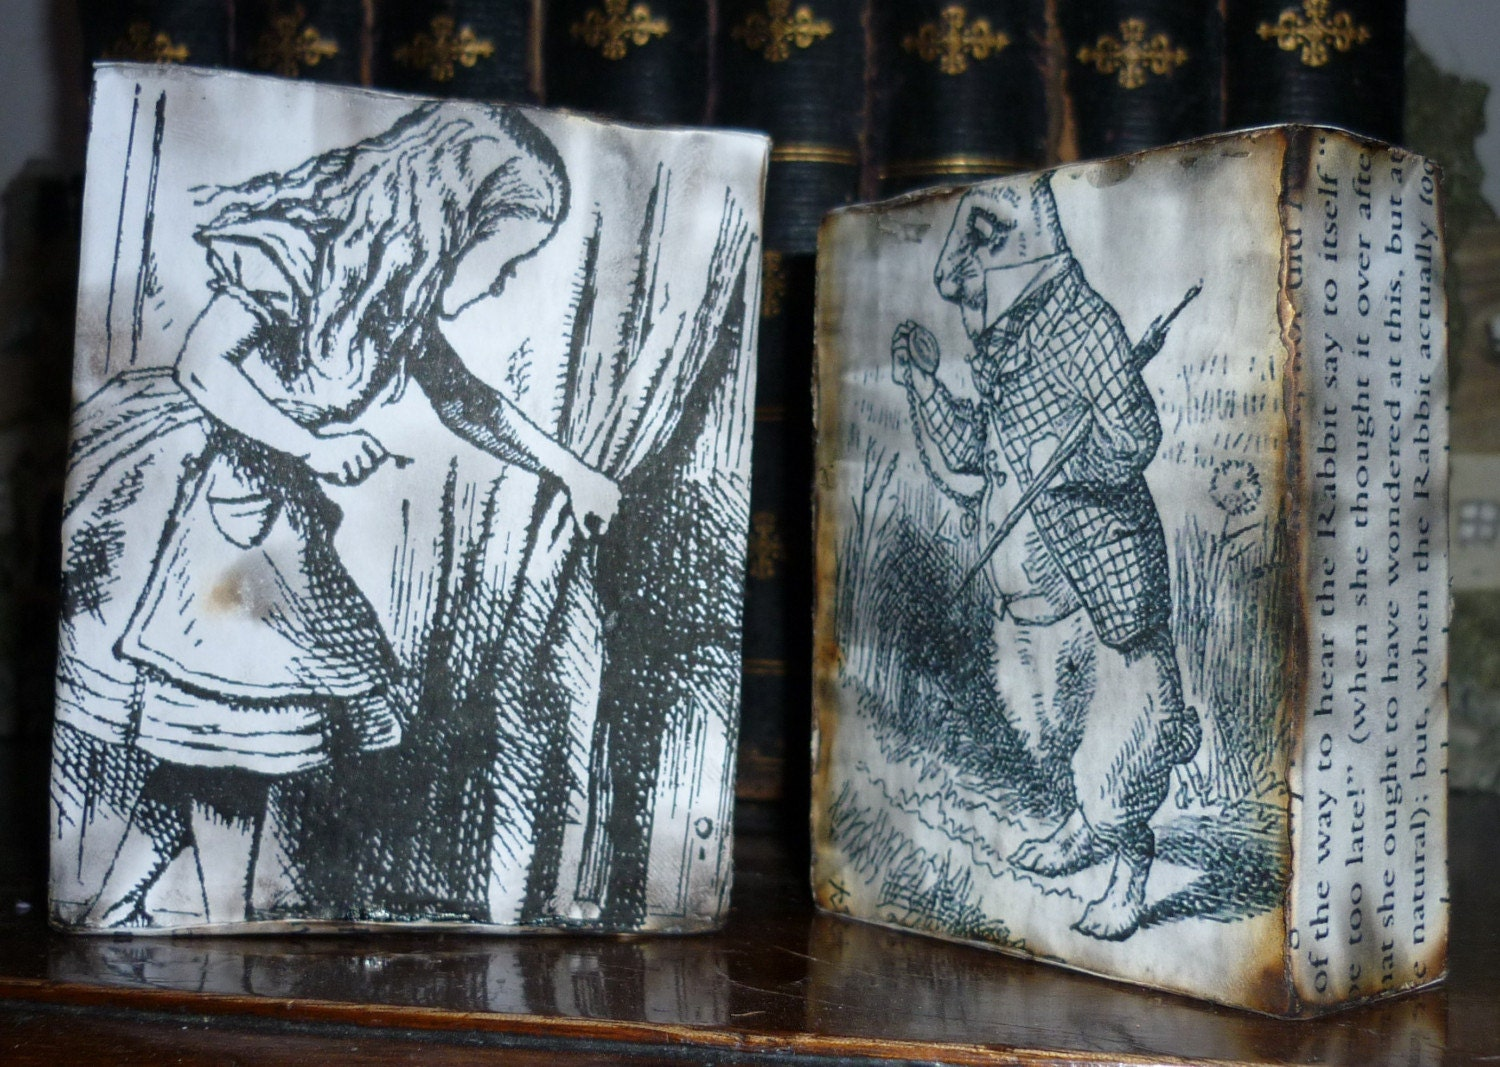 Two Alice in Wonderland ornamental wooden blocks